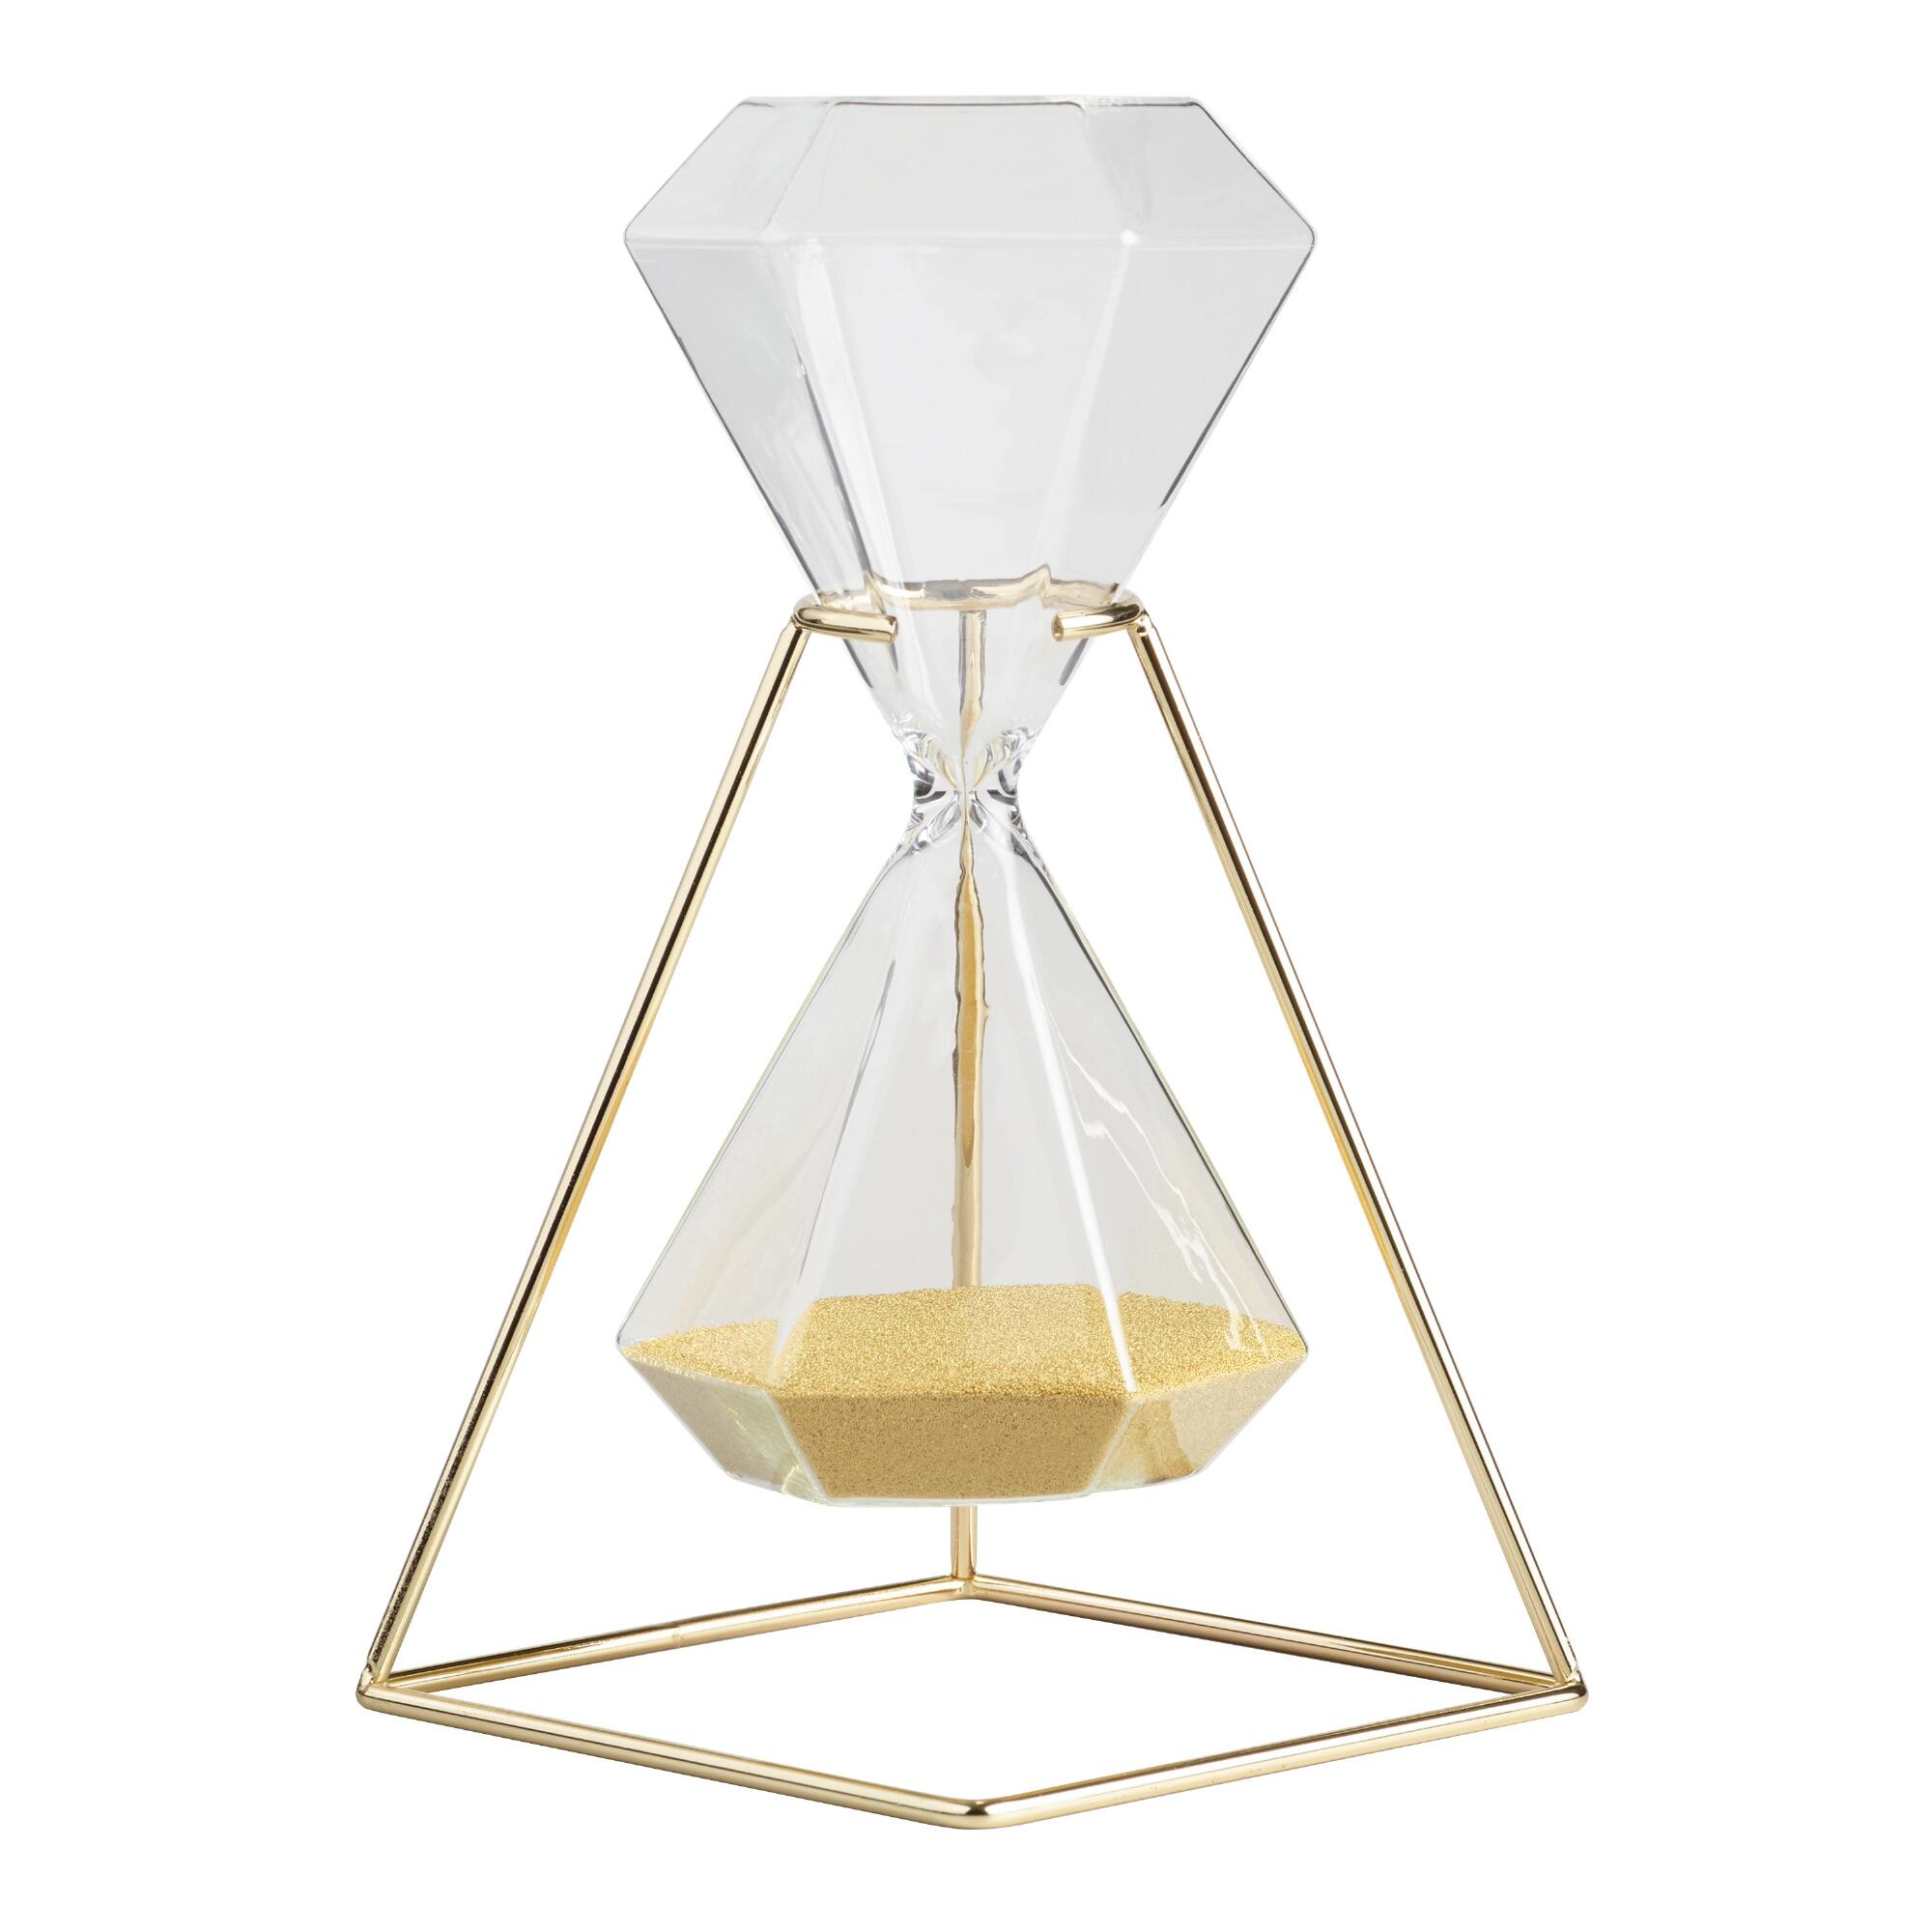 Hexagonal Hourglass with Gold Stand - Metal by World Market